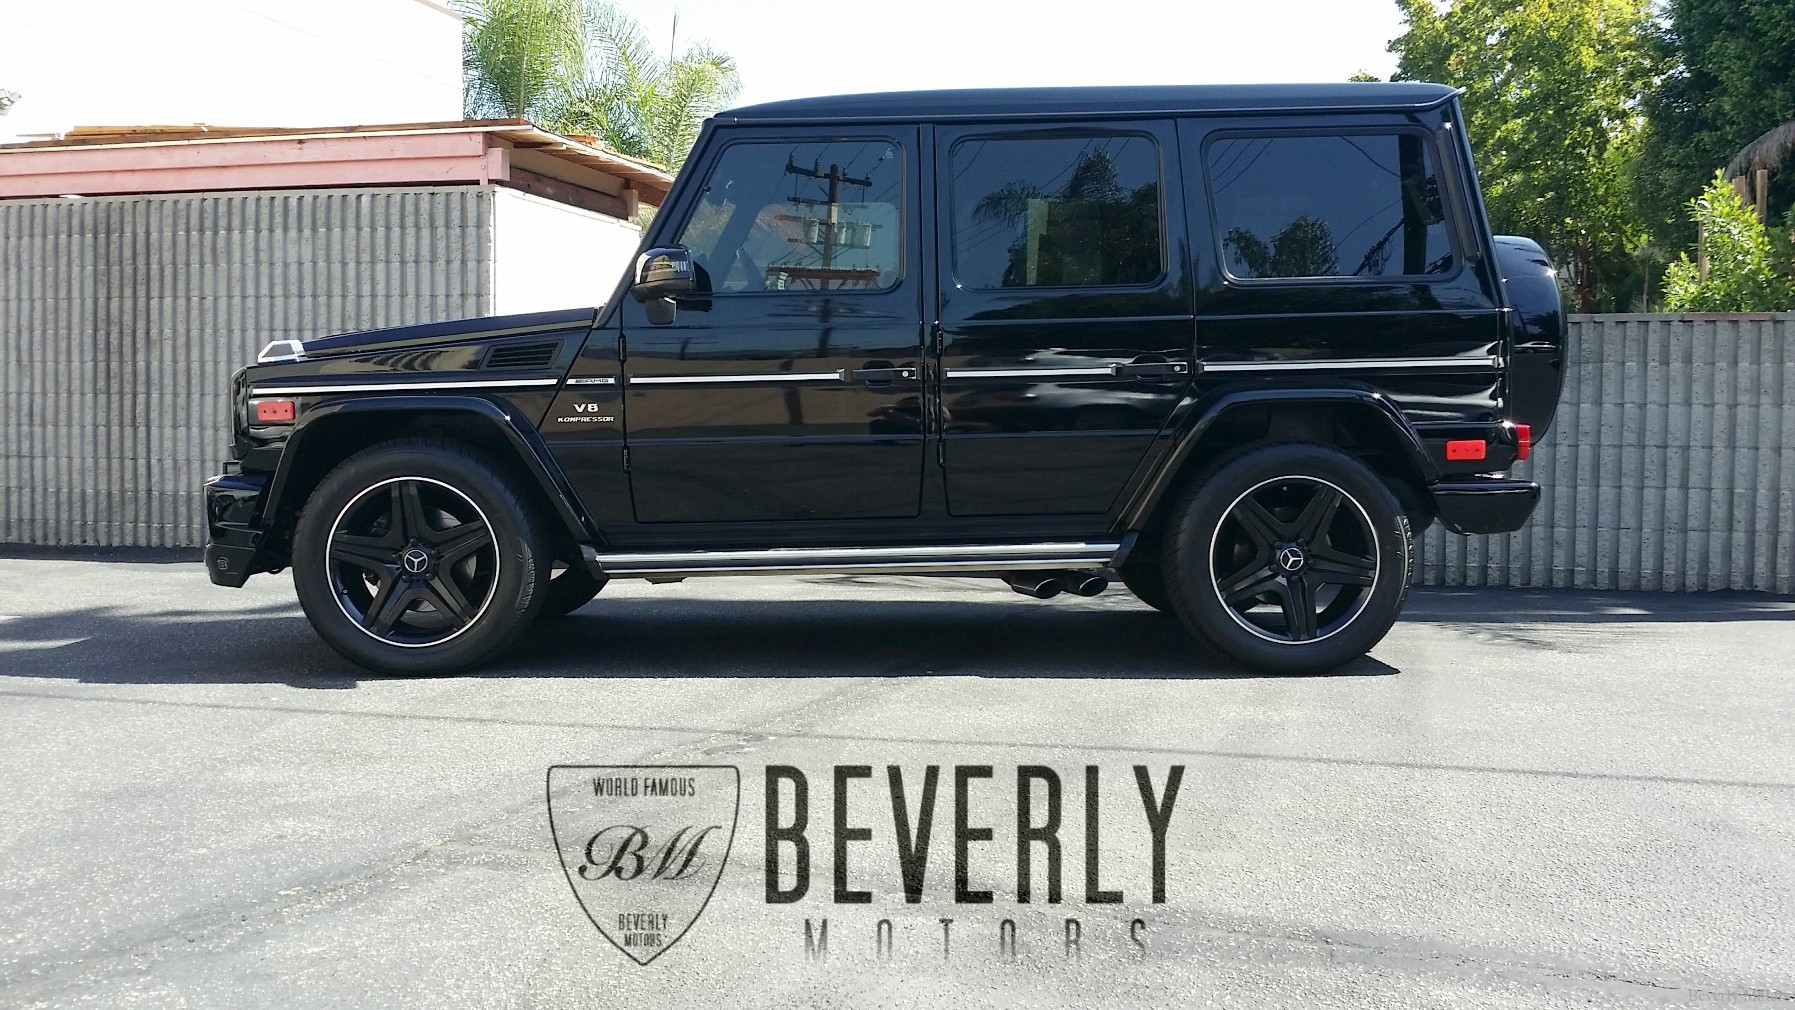 2005 mercedes benz g55 g63 for sale black on black for Mercedes benz g wagon g63